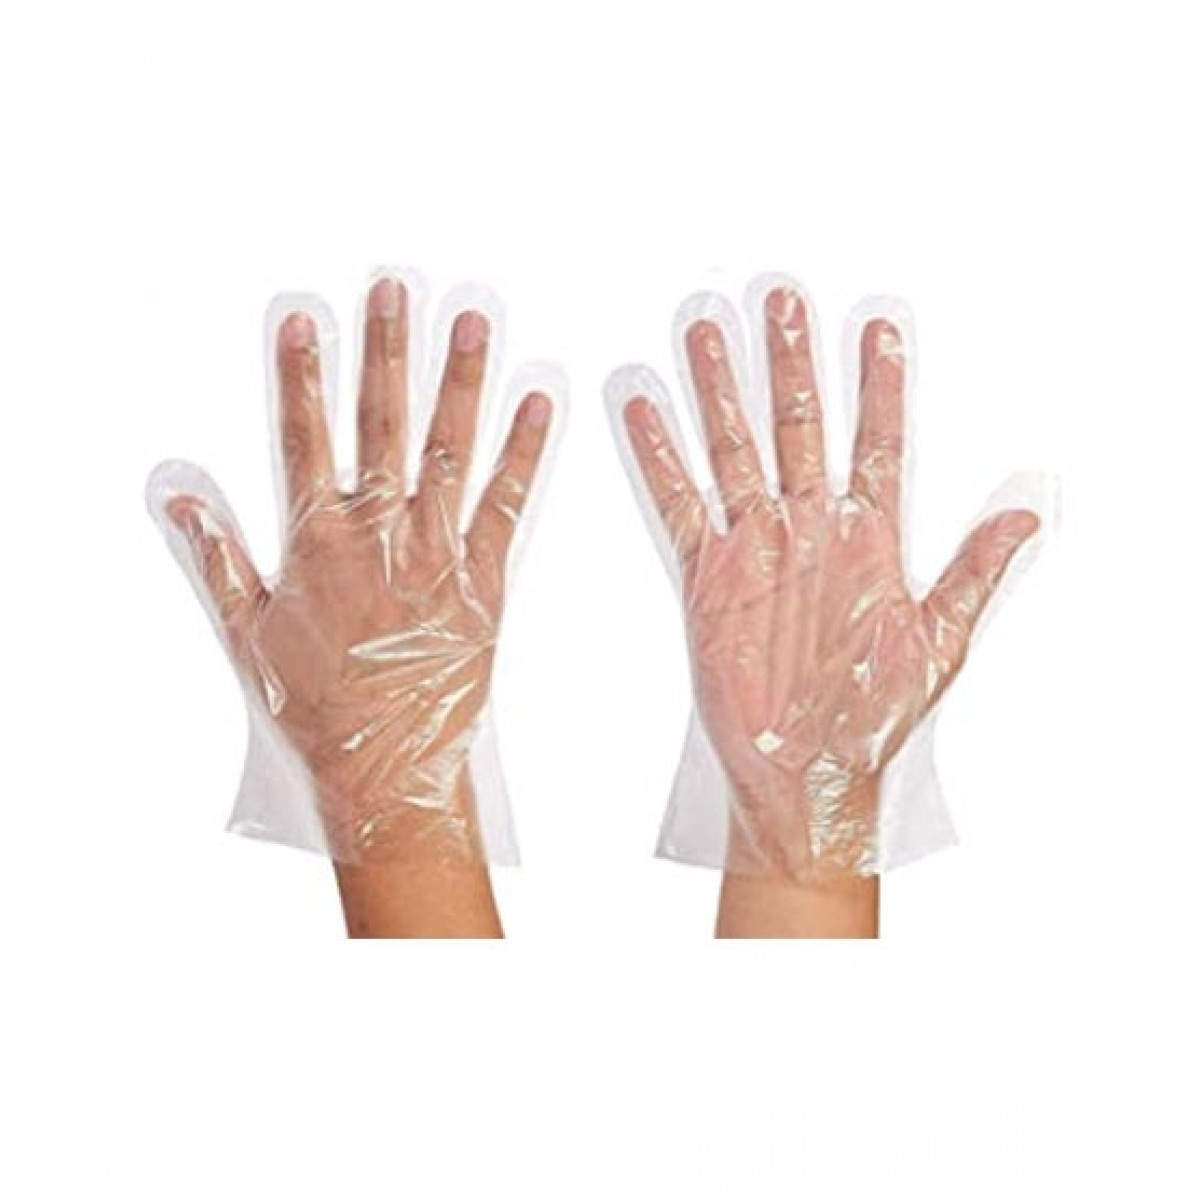 Healthcare Online Disposable Plastic Hand Gloves - 50 Pairs